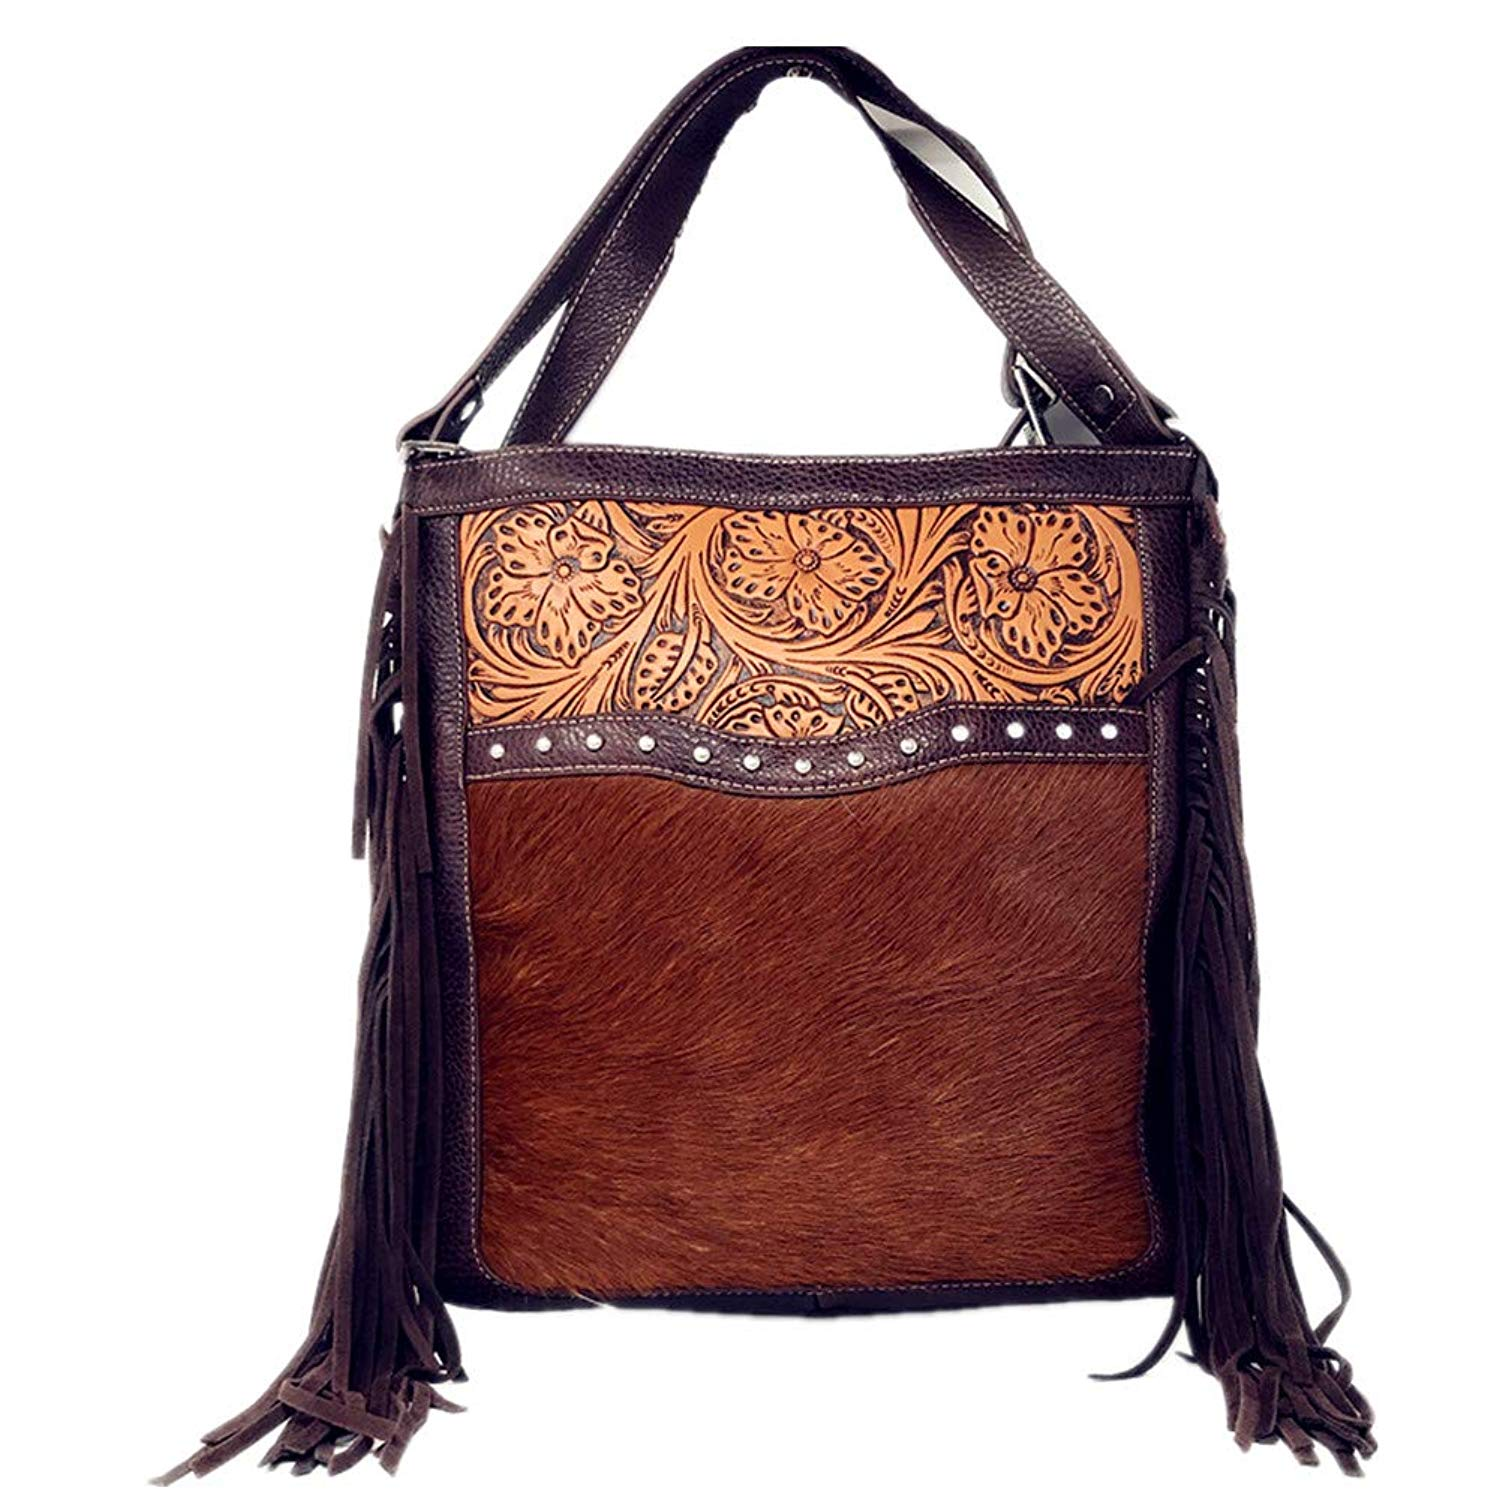 d7ceb8a6e91 Get Quotations · Texas West Concealed Carry Cow Fur Zip Top Shoulder Bag  Tote Floral Tooled Genuine Leather Handbag